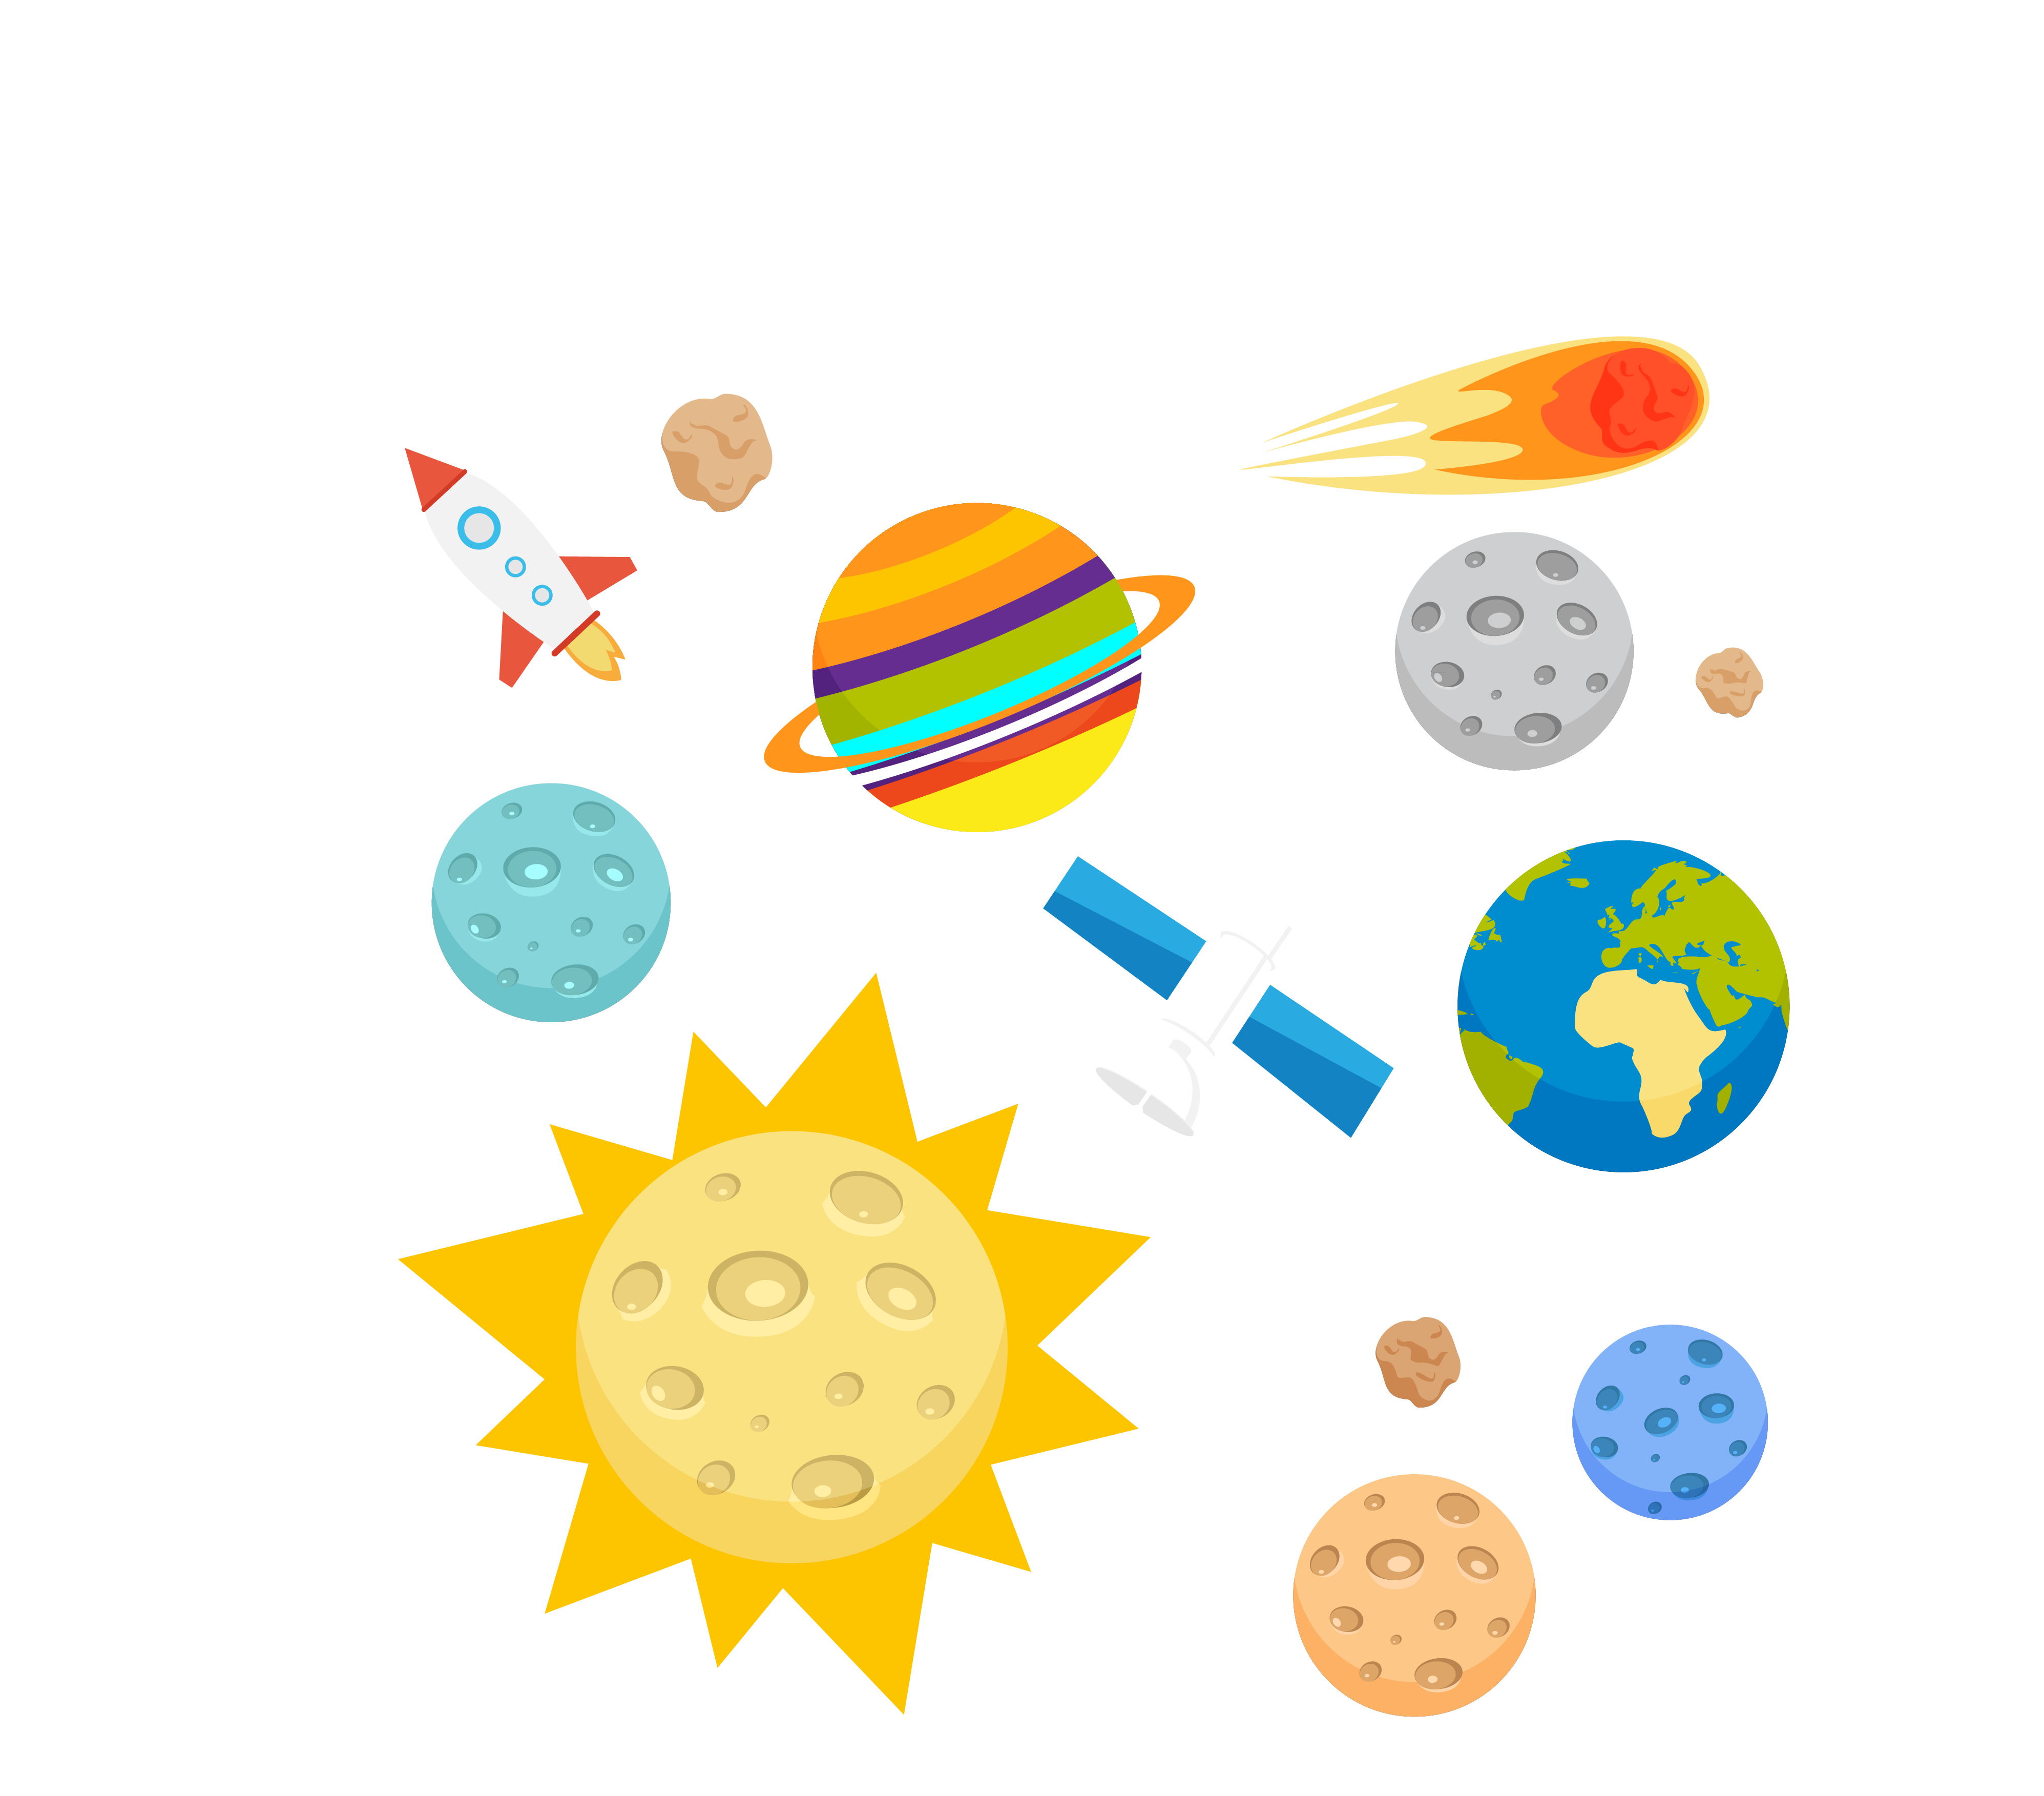 Planets transprent png free. Planet clipart outer space